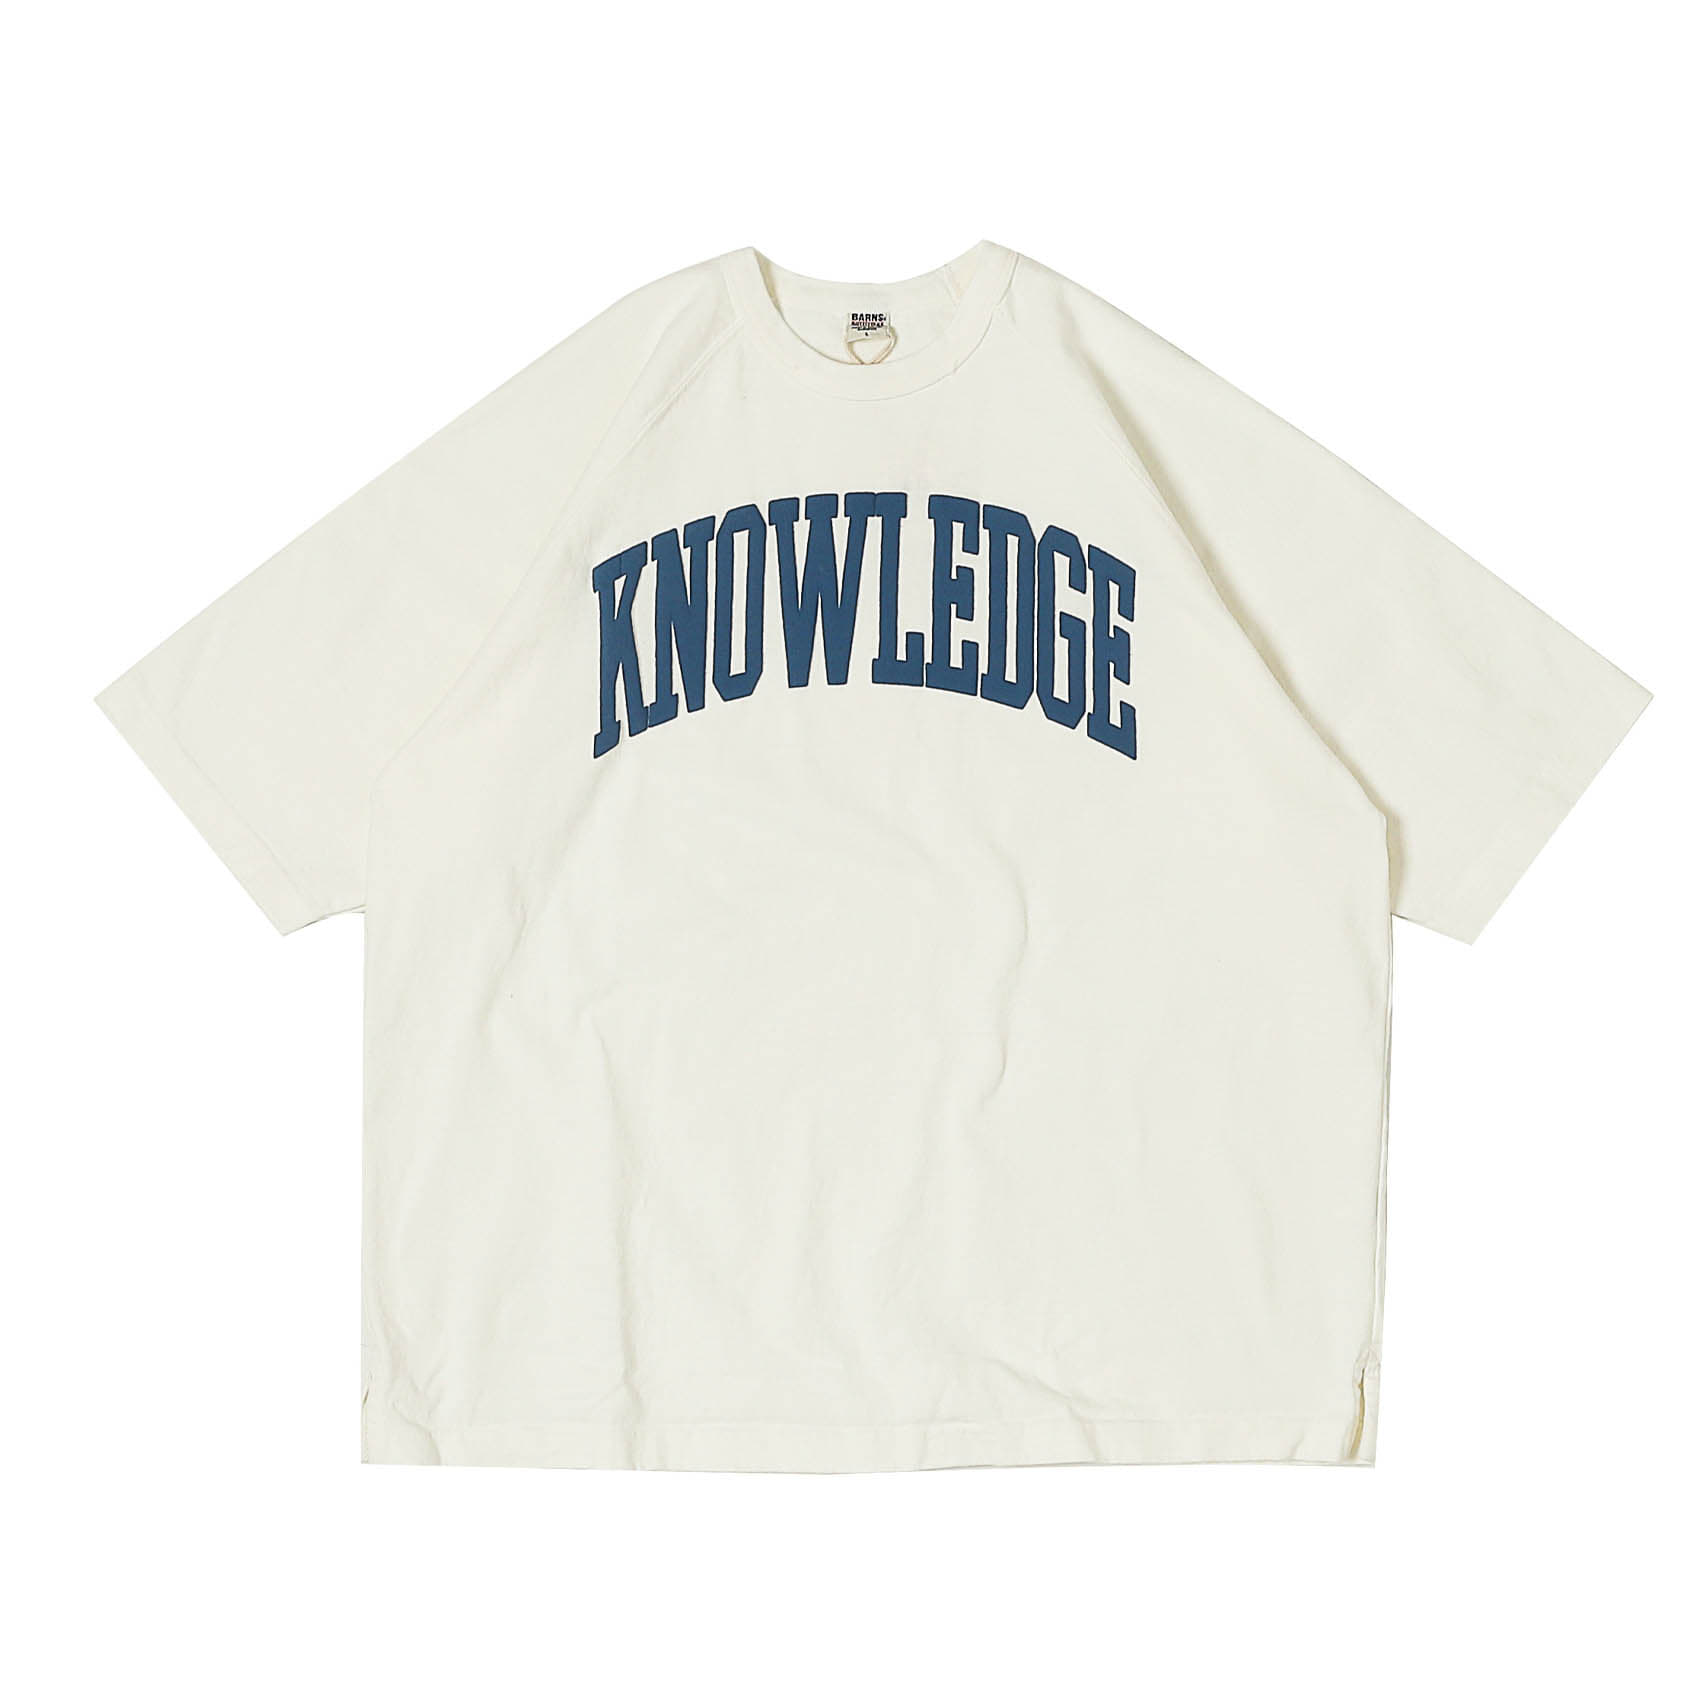 S/S PRINTED TEE - KNOWLEDGE WHITE